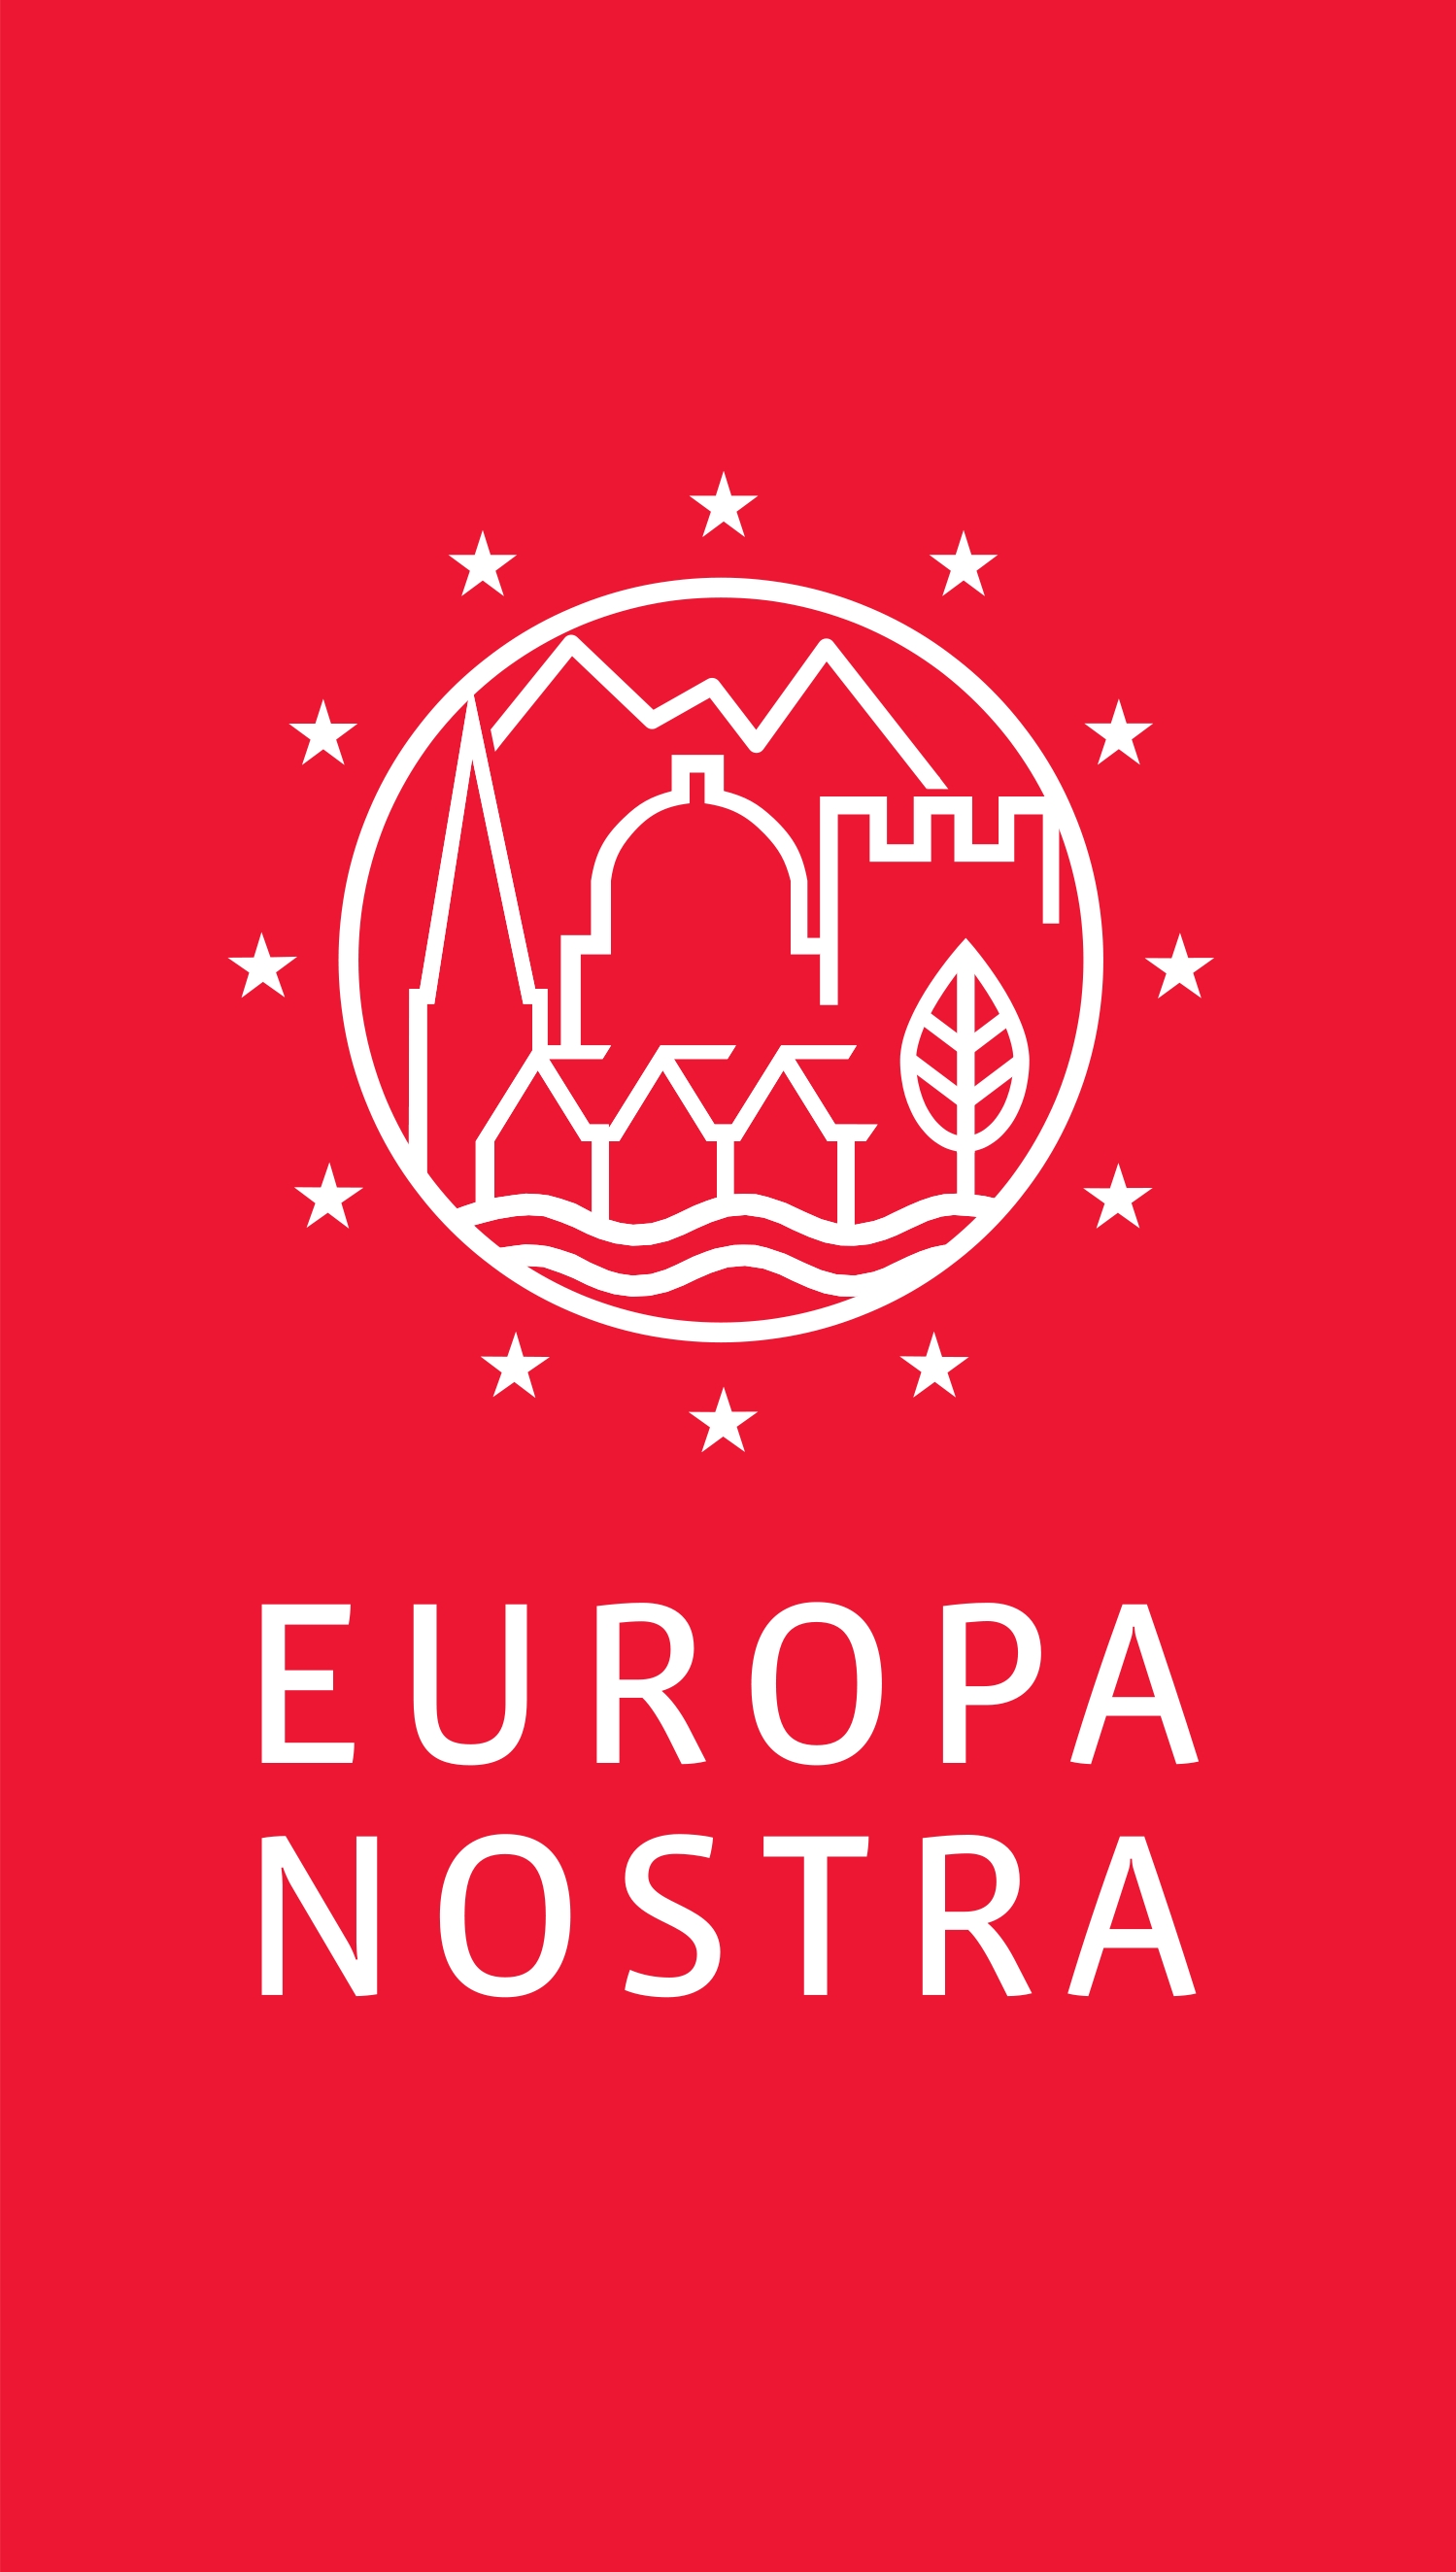 Applications for the European Heritage Awards/Europa Nostra Awards 2021 are now open